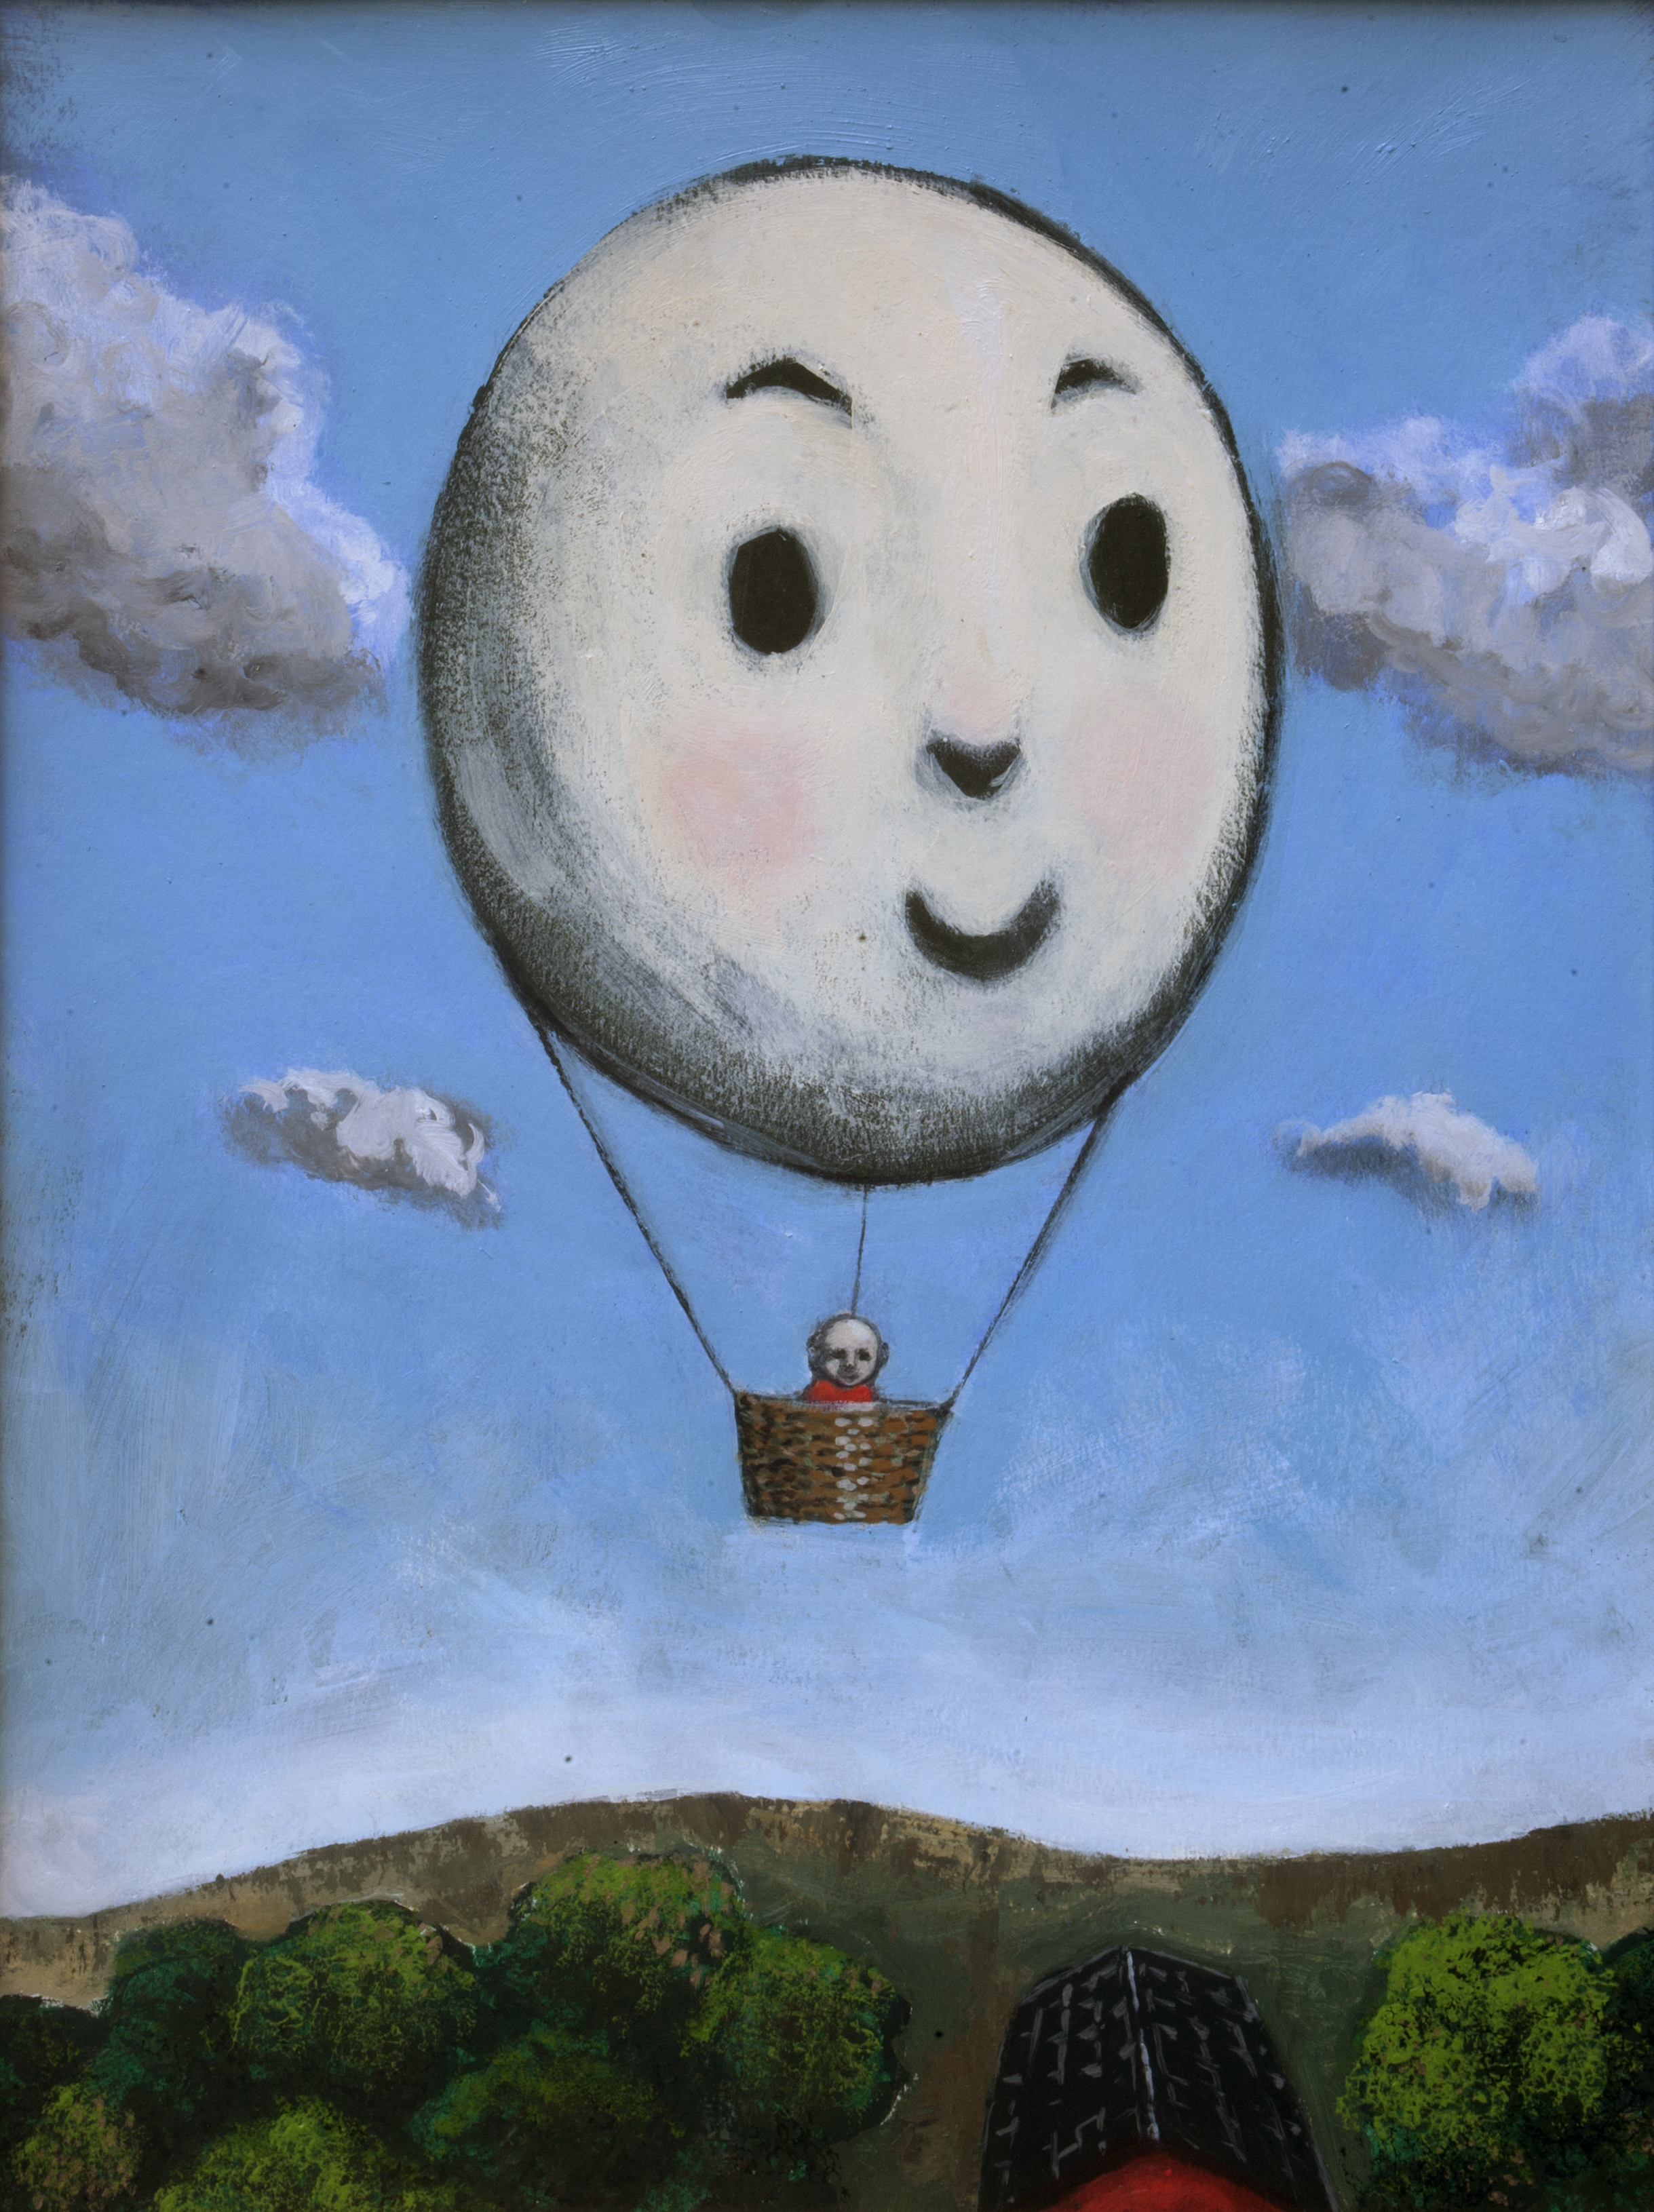 Lofty Balloon